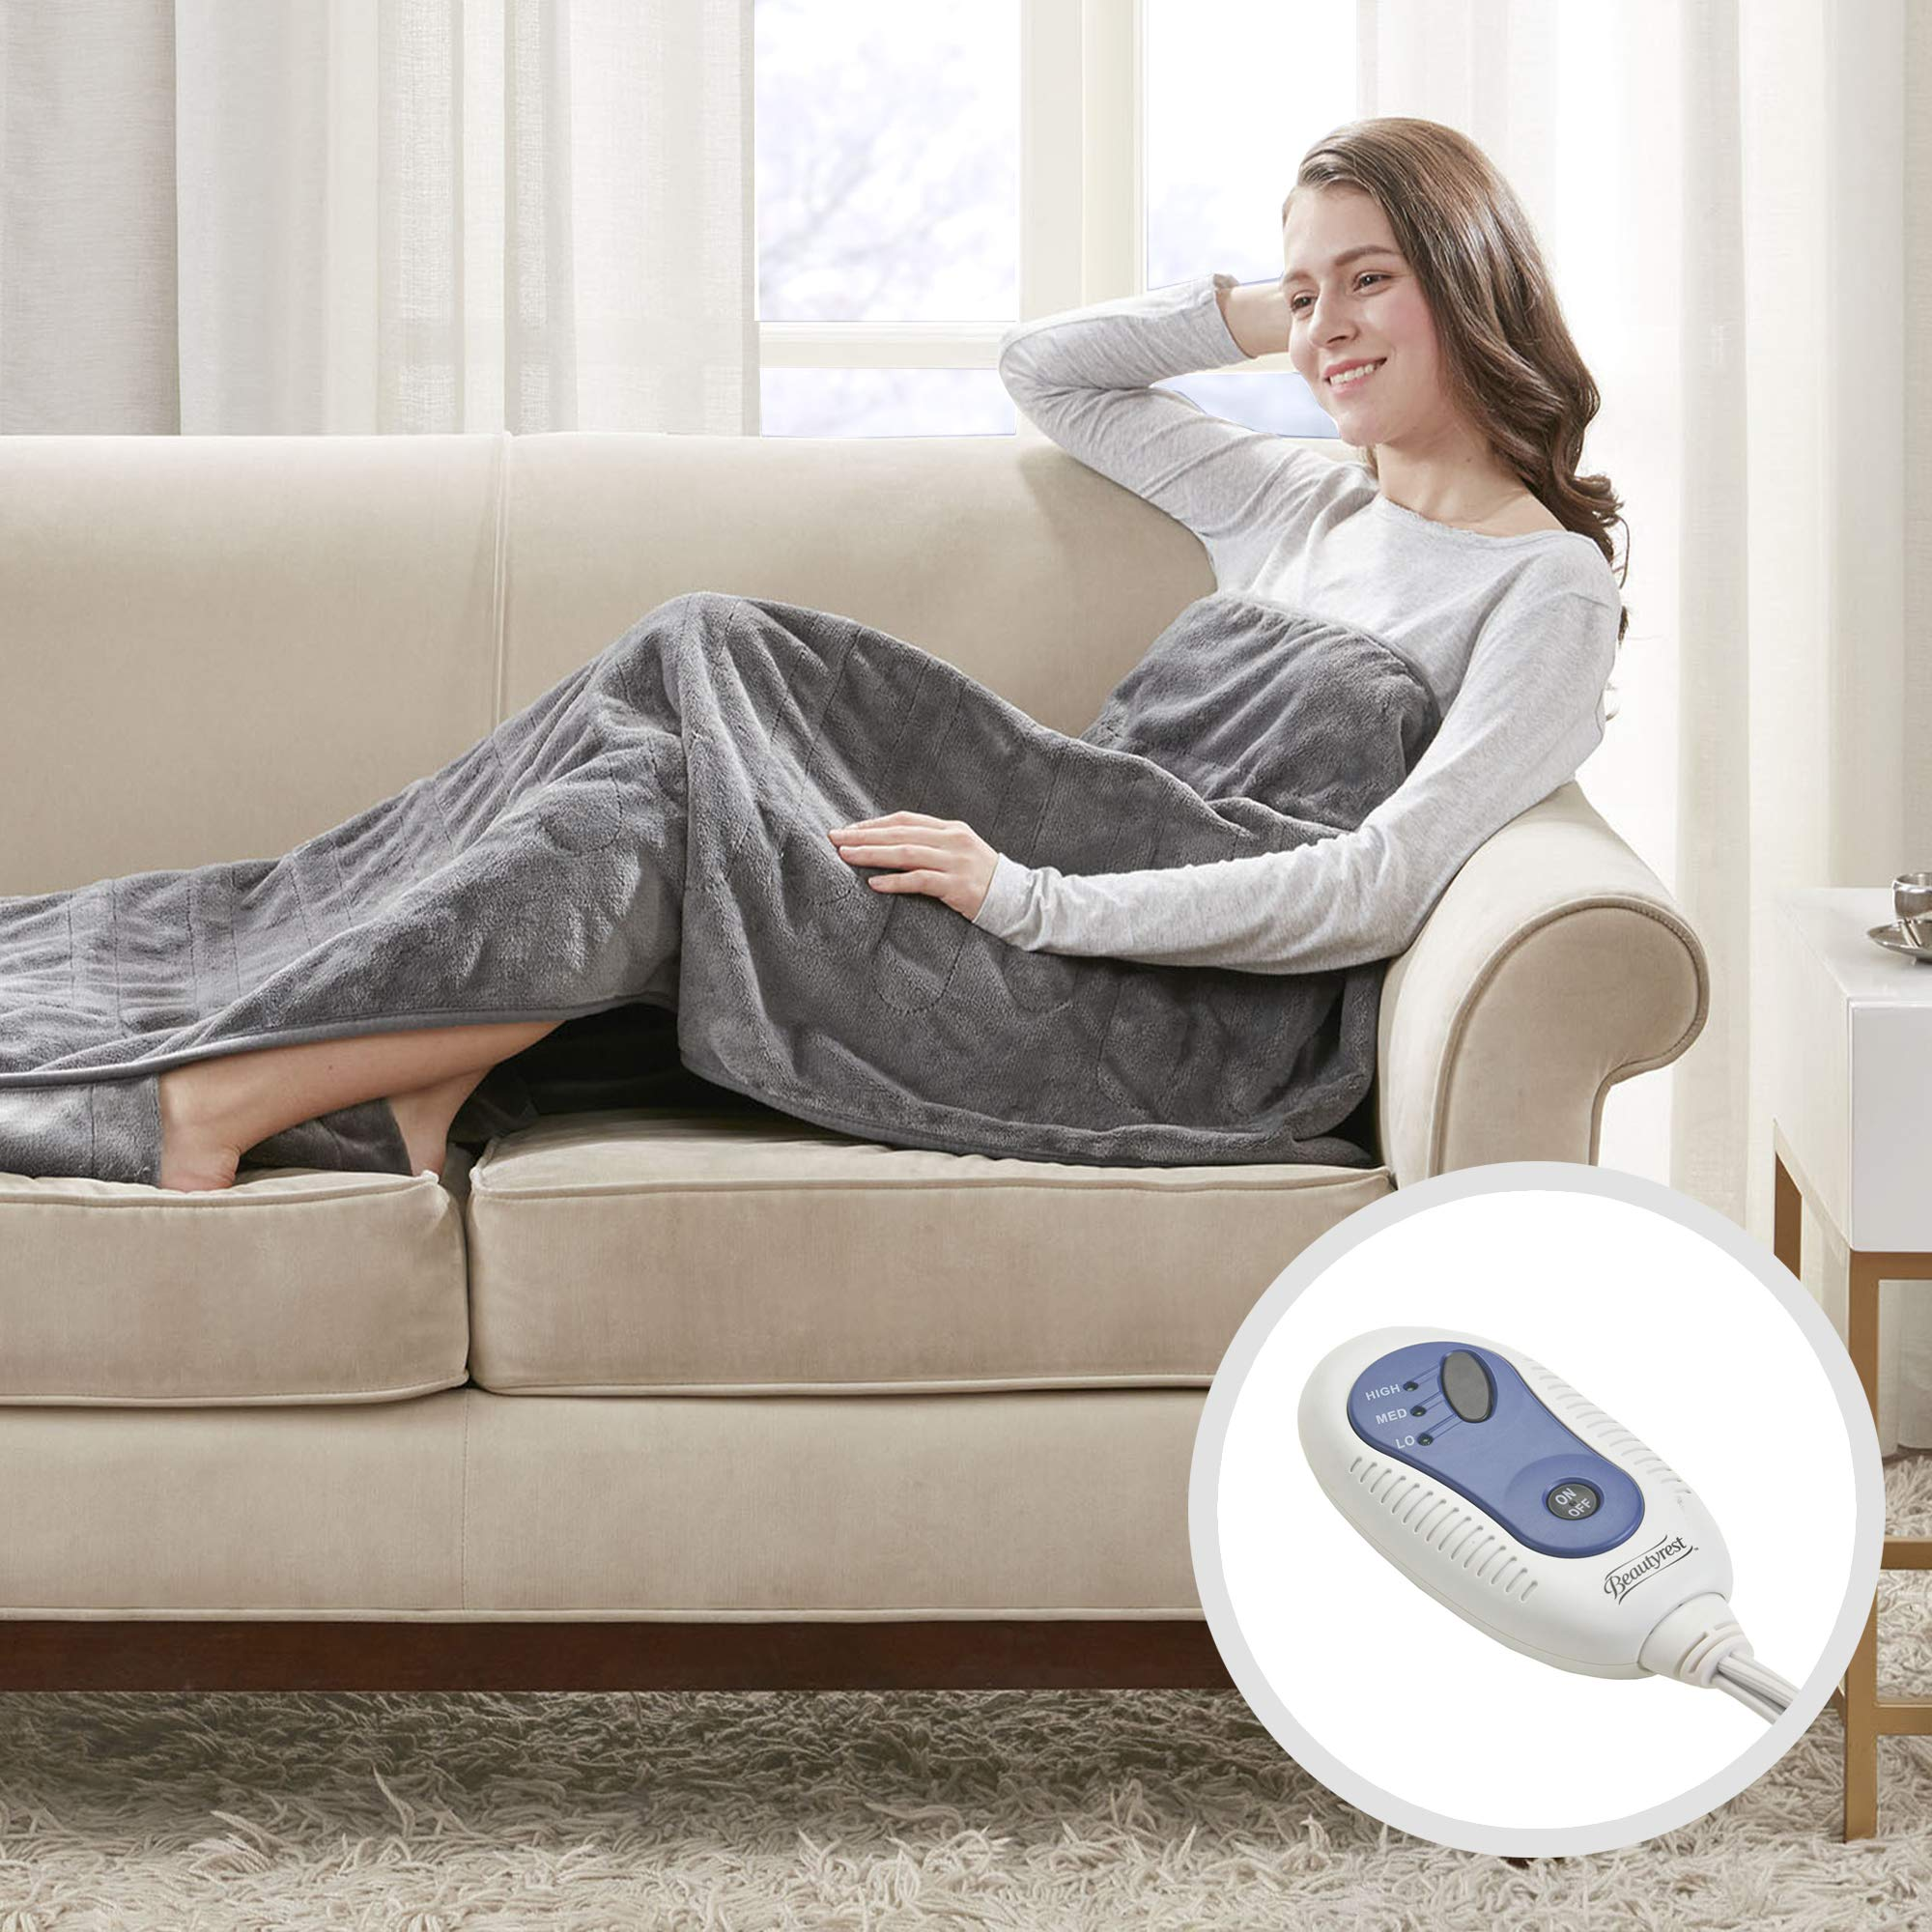 Beautyrest Foot Pocket Soft Microlight Plush Electric Blanket Heated Throw Wrap with Auto Shutoff, 50x62, Grey by Beautyrest